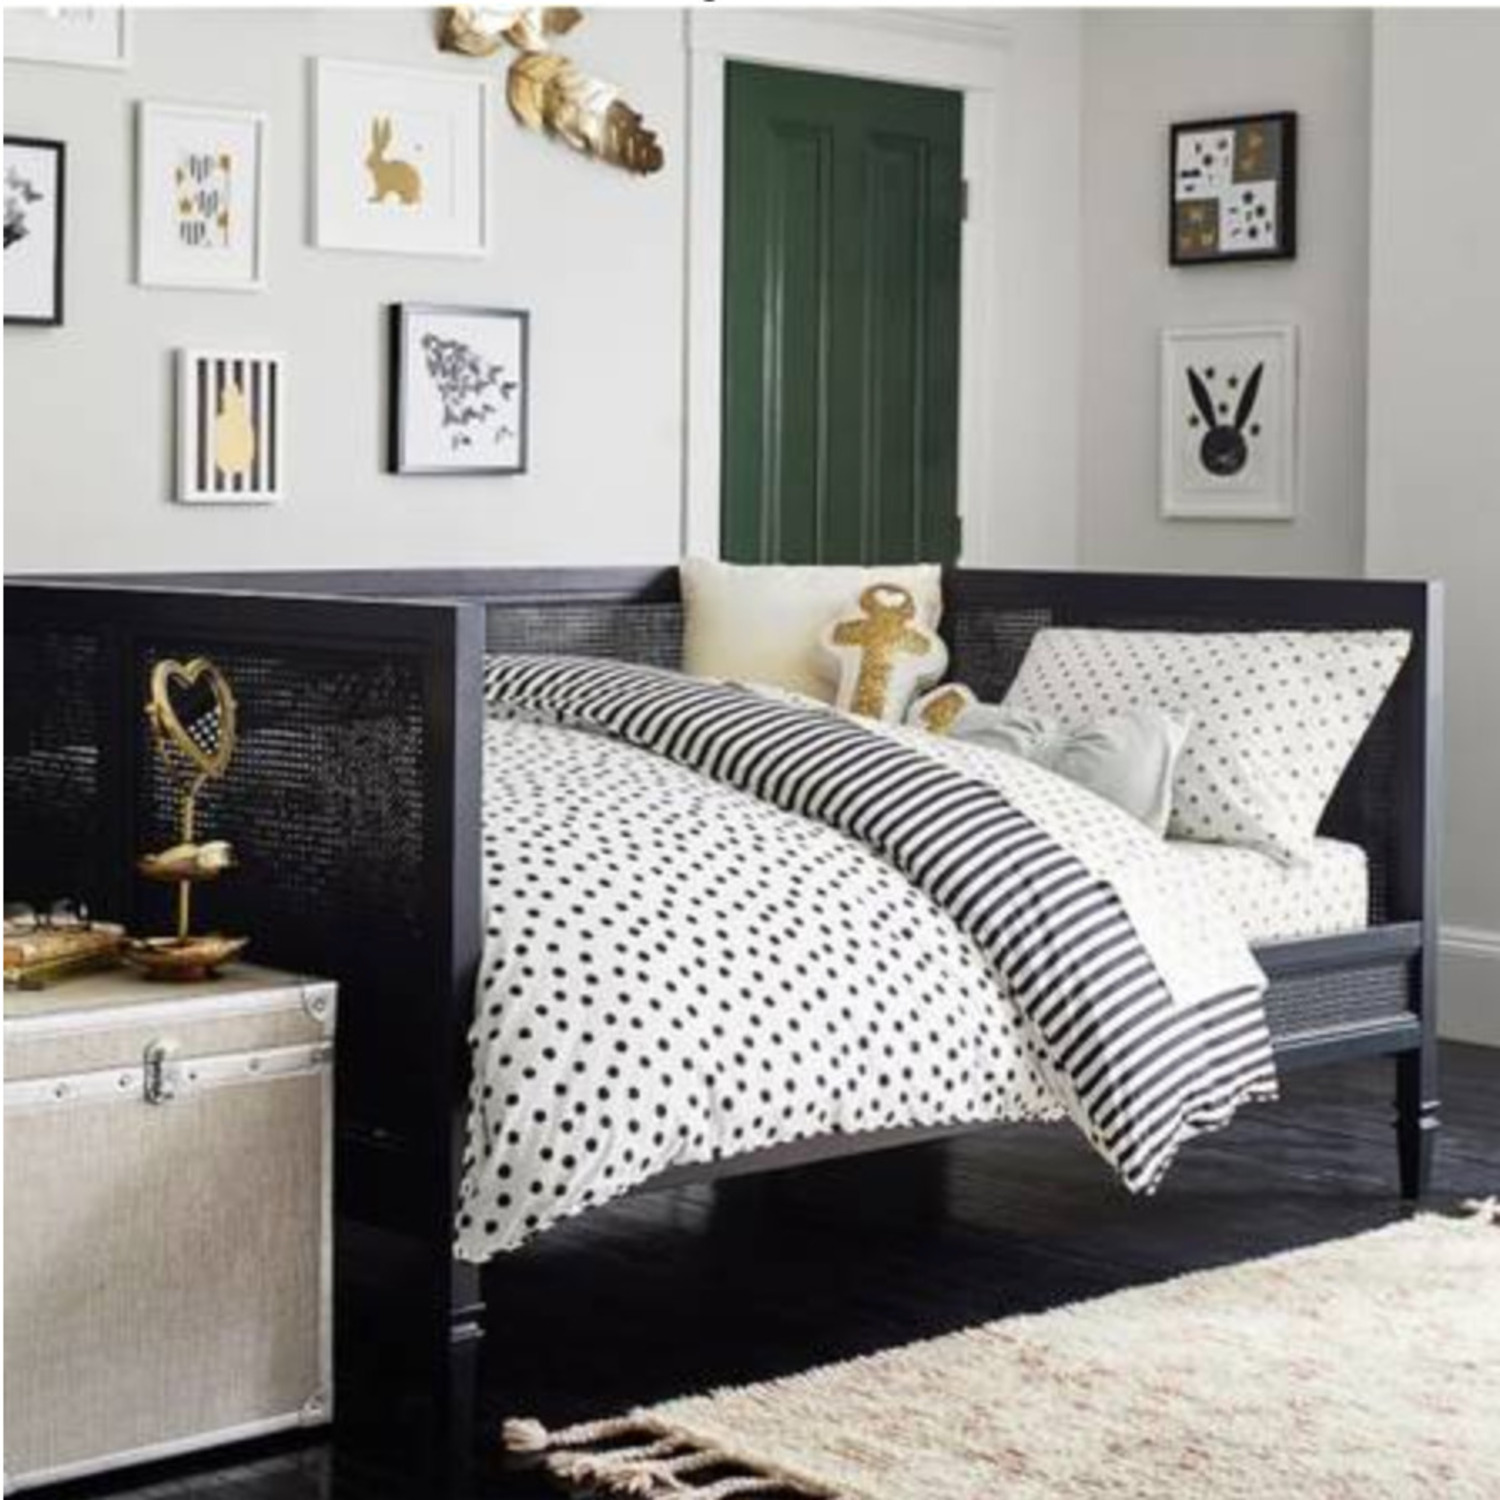 Pottery Barn Full Size Bed/Day Bed - image-3